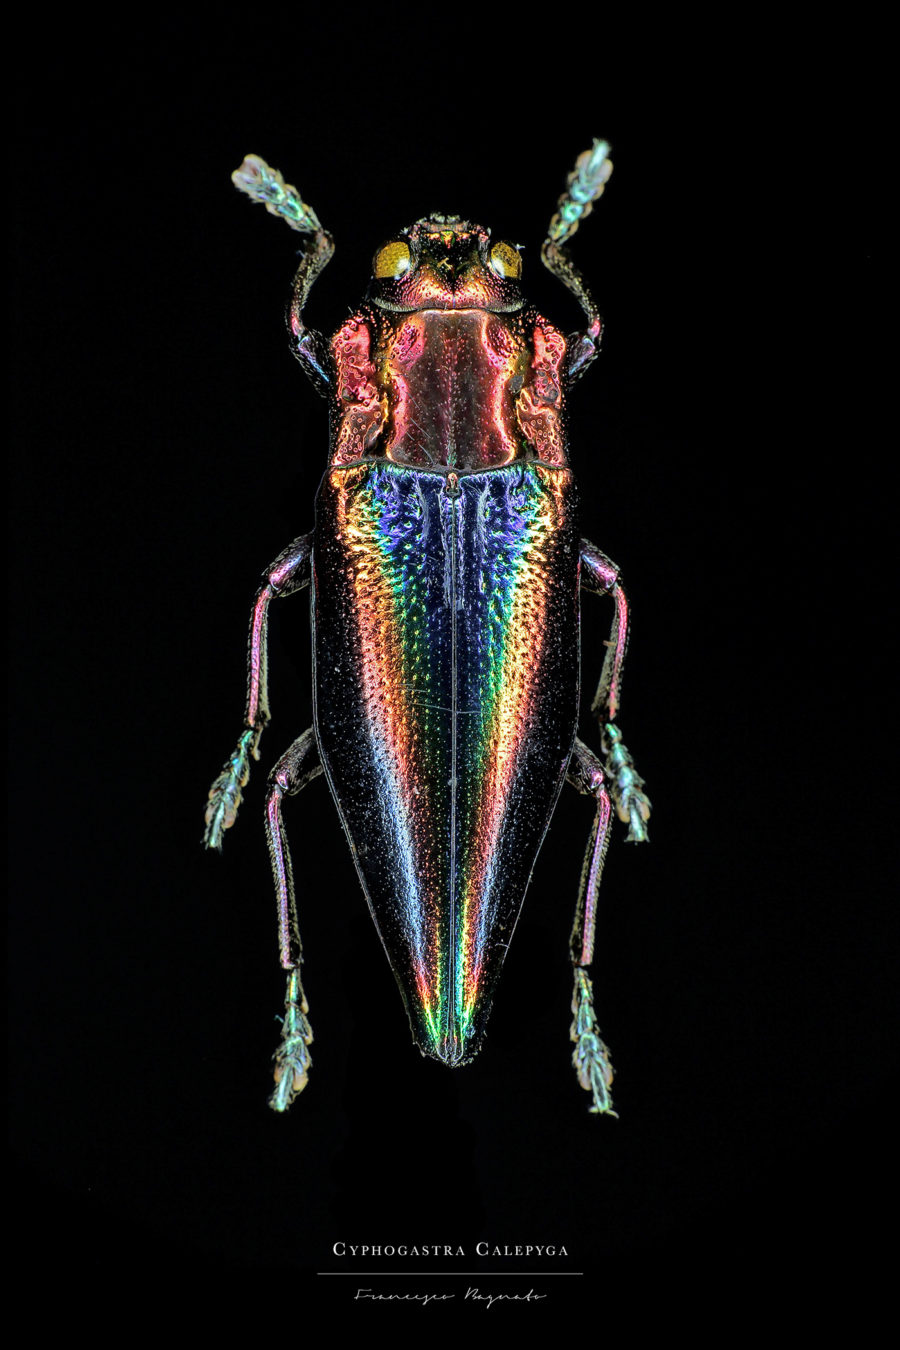 Stunning Pictures of Colorful Insects 6 Beautiful Pictures of Colorful Insects